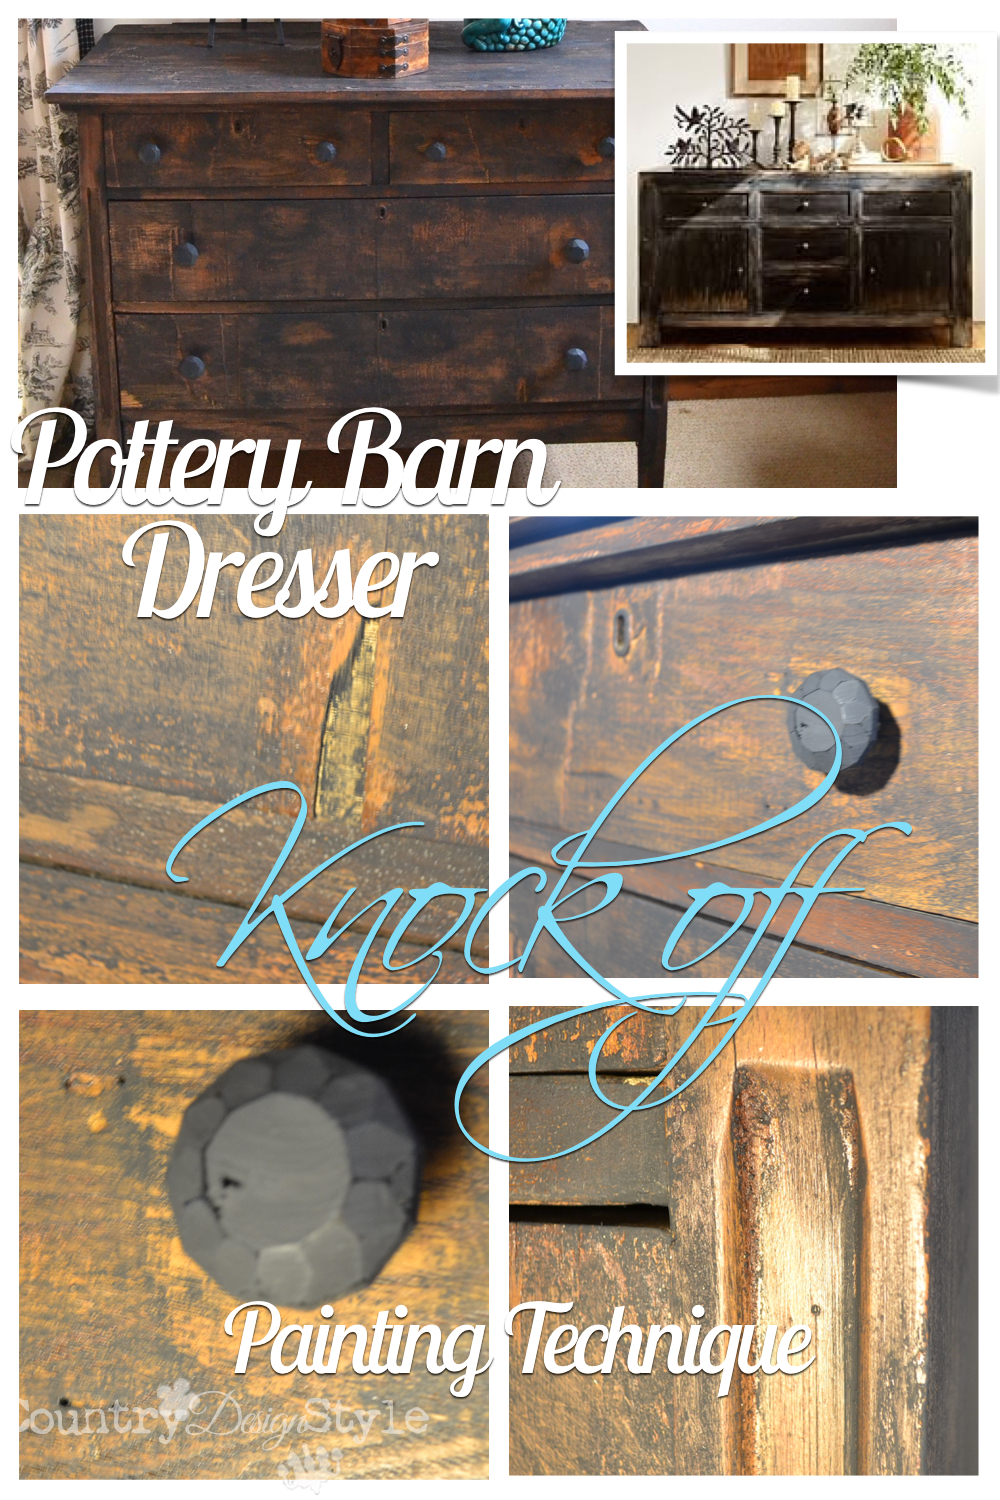 pottery-barn-inspired-country-design-stylepn